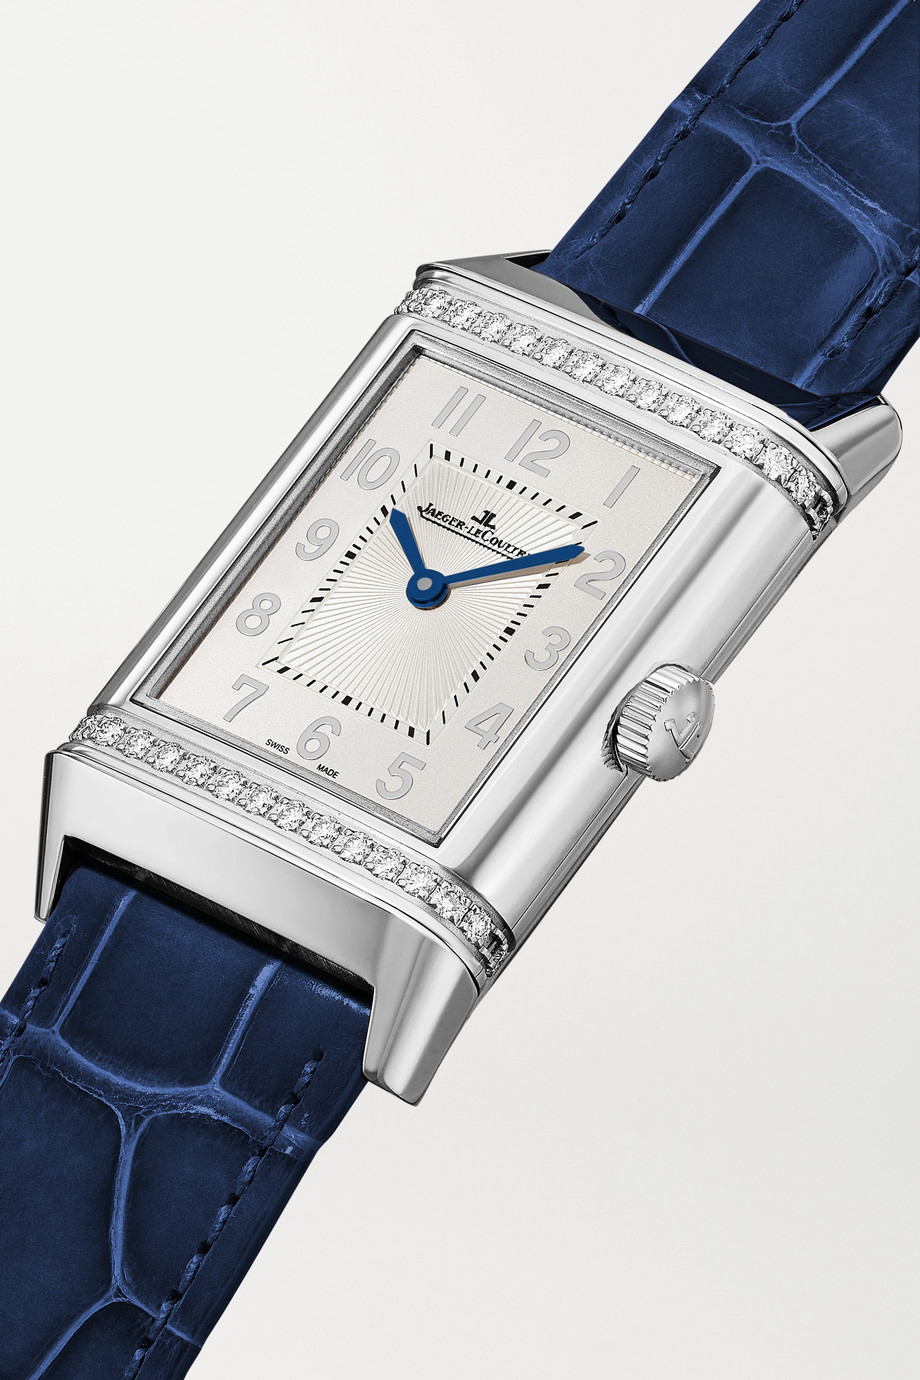 Jaeger-LeCoultre Reverso Classic Duetto Automatic 24mm medium stainless steel, alligator and diamond watch